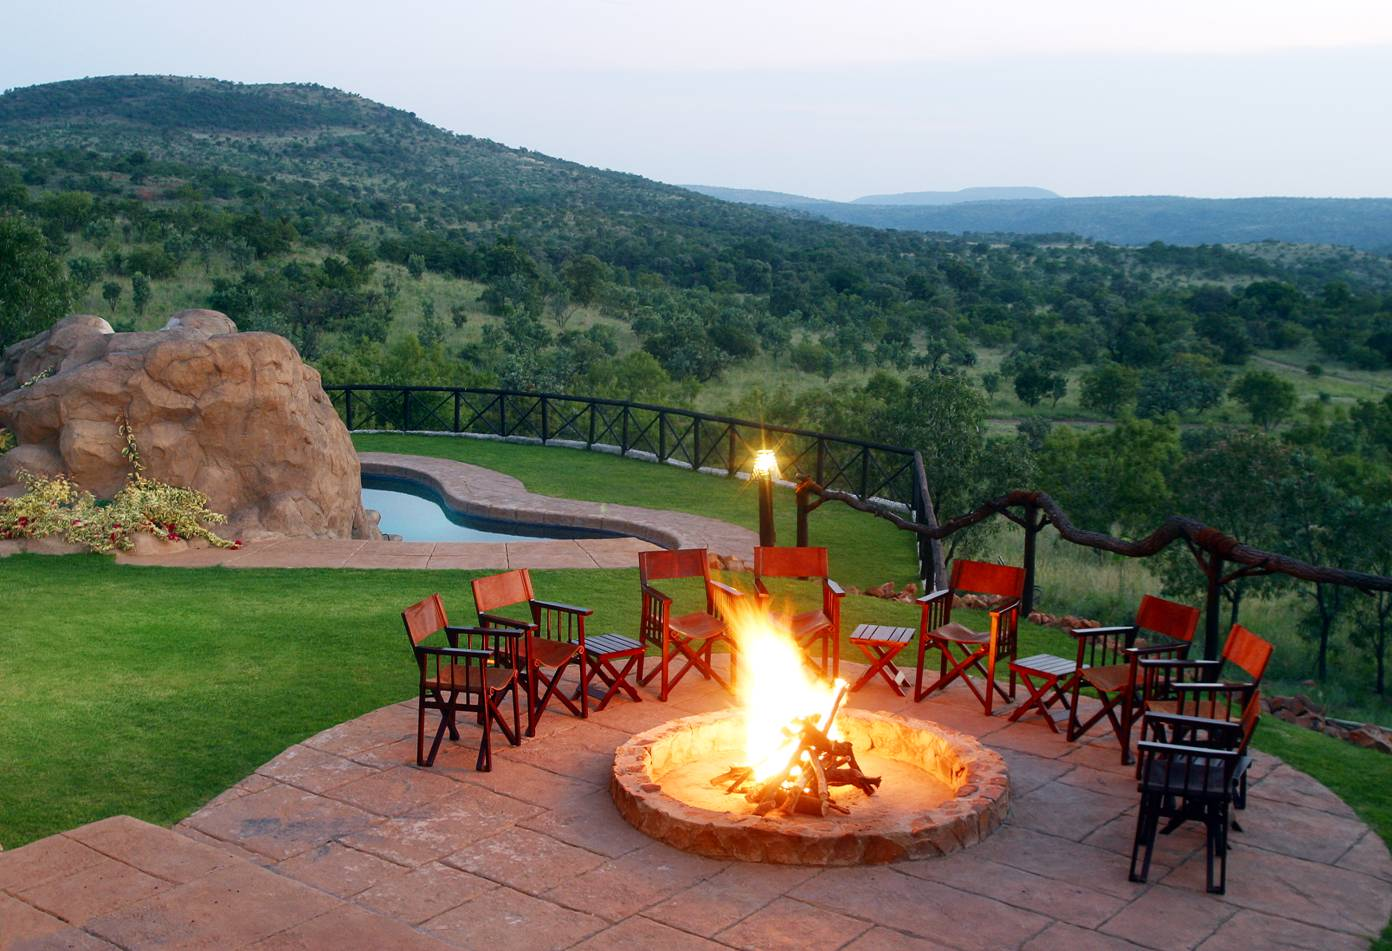 South africa has some of the most beautiful landscapes our world has to offer this incredible lodge is up for sale offering 10 luxury suites